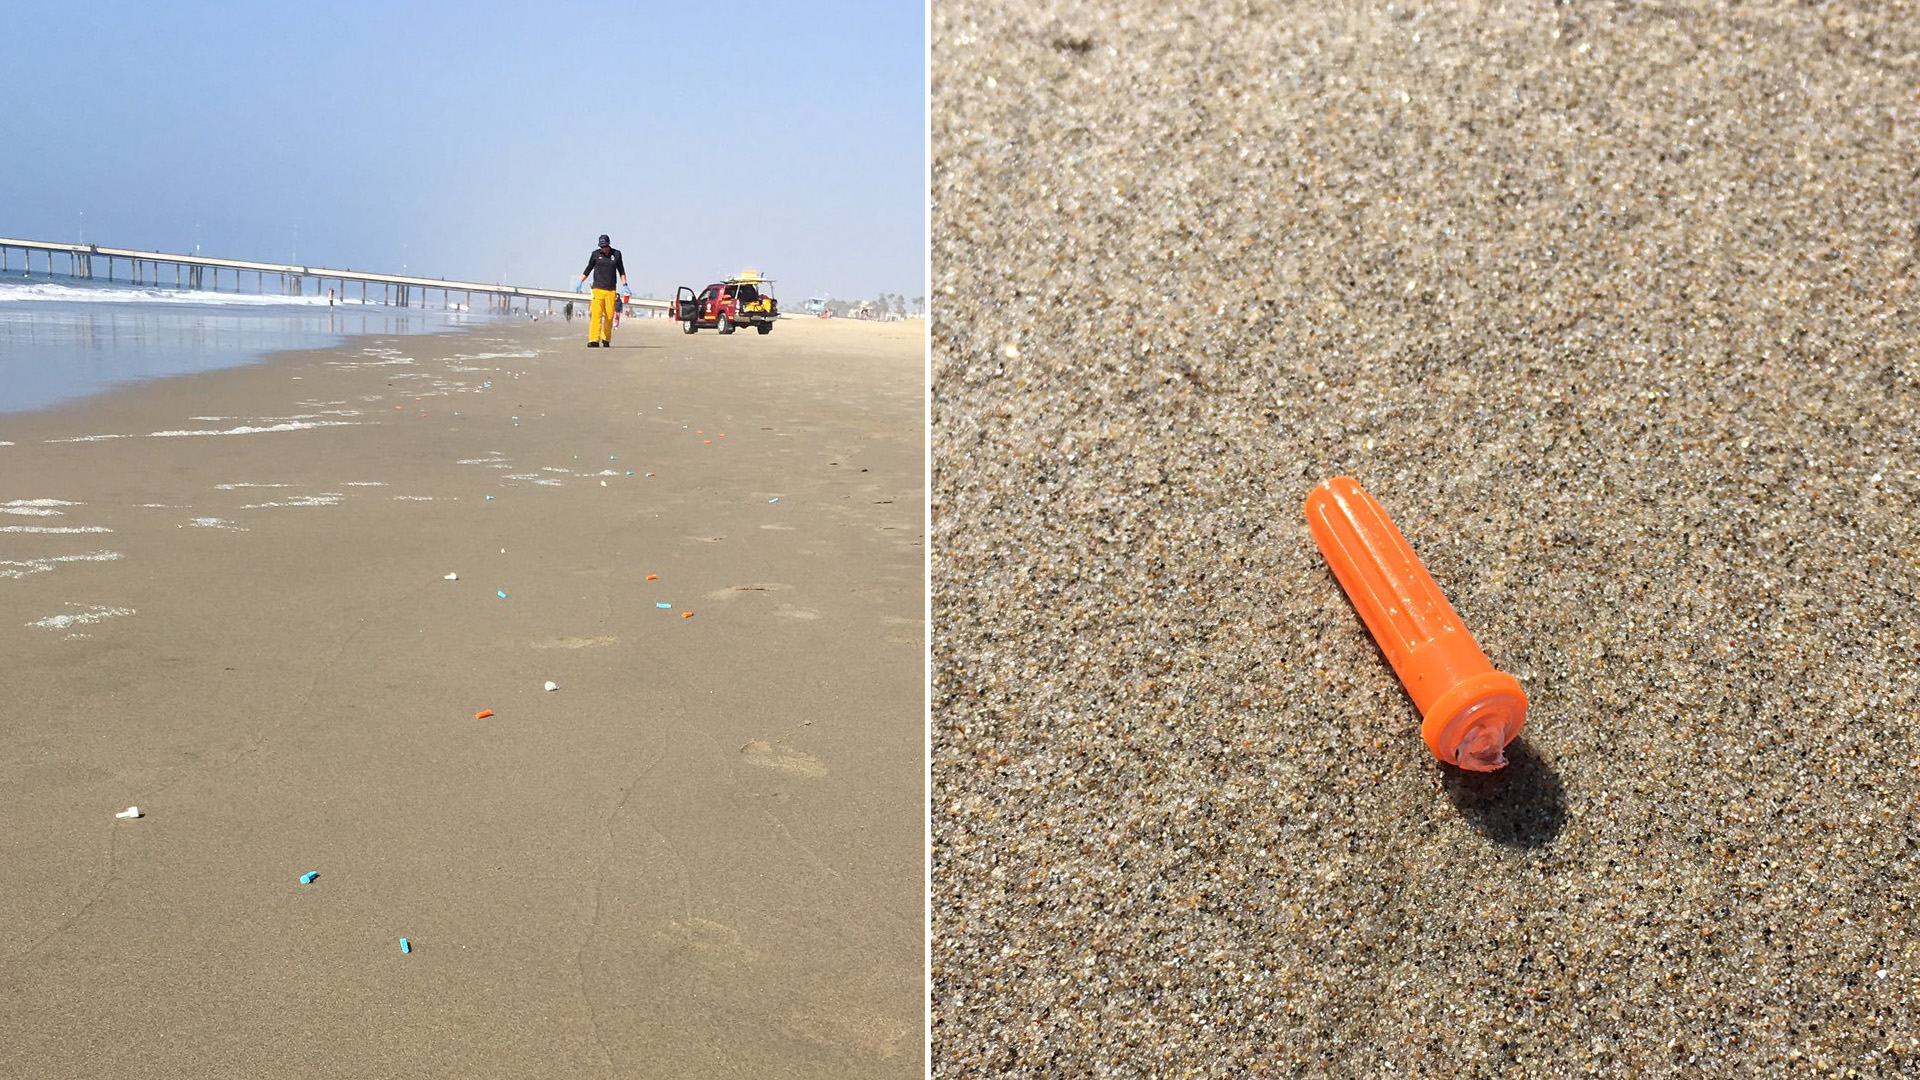 Medical supplies were found along the short of Venice Beach on Nov. 10, 2019. (Credit: LA County Fire Department Lifeguard Division)